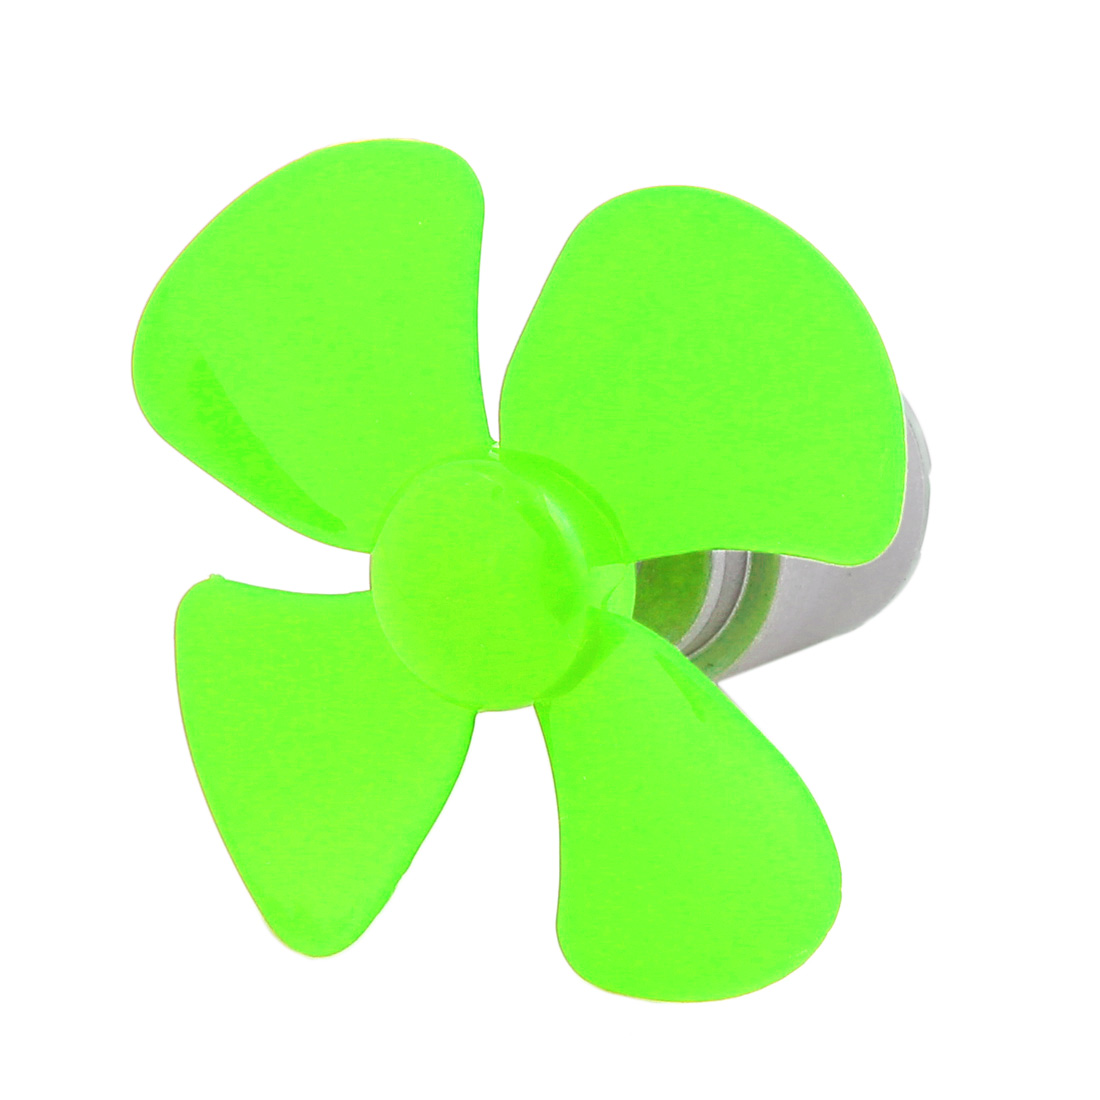 DC 3V 0.13A 20000RPM Green Strong Force Motor 4 Vanes 56mm Dia Propeller for RC Aircraft